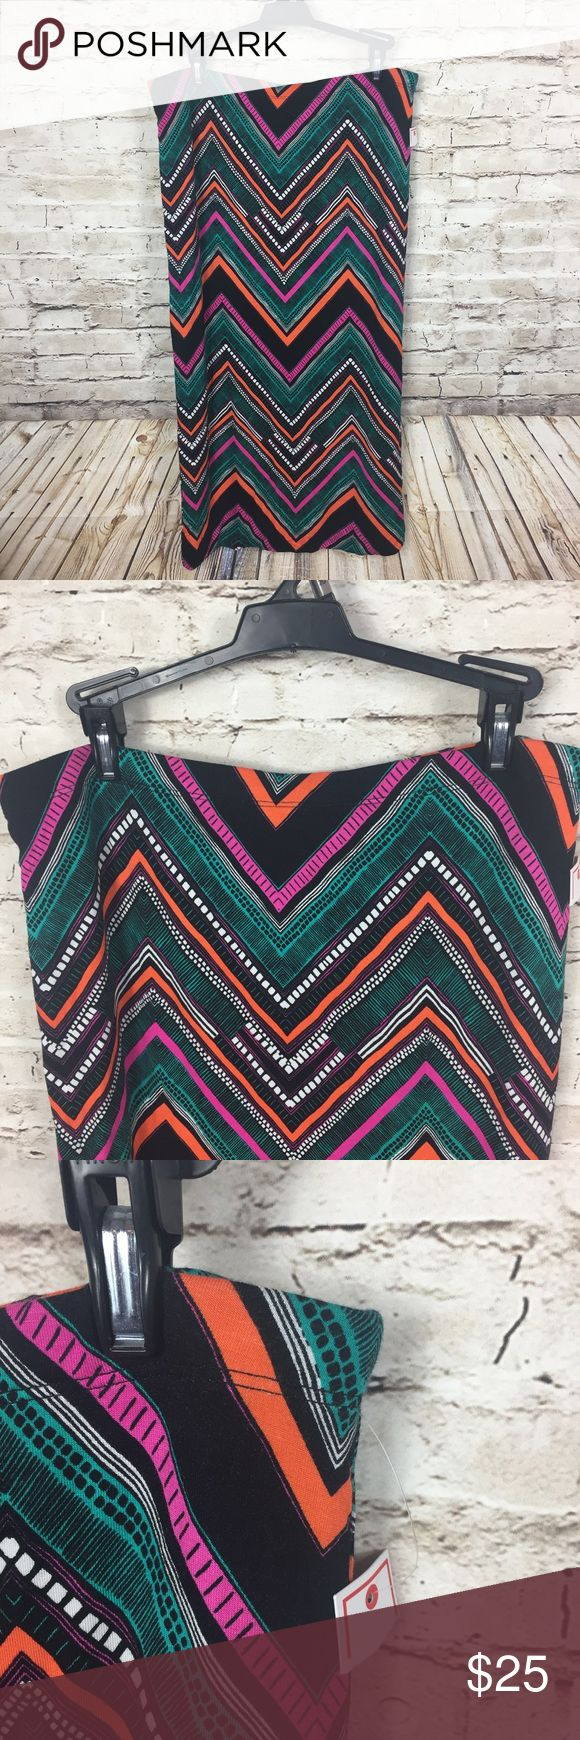 "Bisou Bisou chevron skirt Brand new chevron pencil skirt. Super cute for upcoming spring months. Perfect for casual wear or in the office.   Waist- Approx 16"" Length- Approx 31""  95% rayon 5% spandex Bisou Bisou Skirts Maxi"